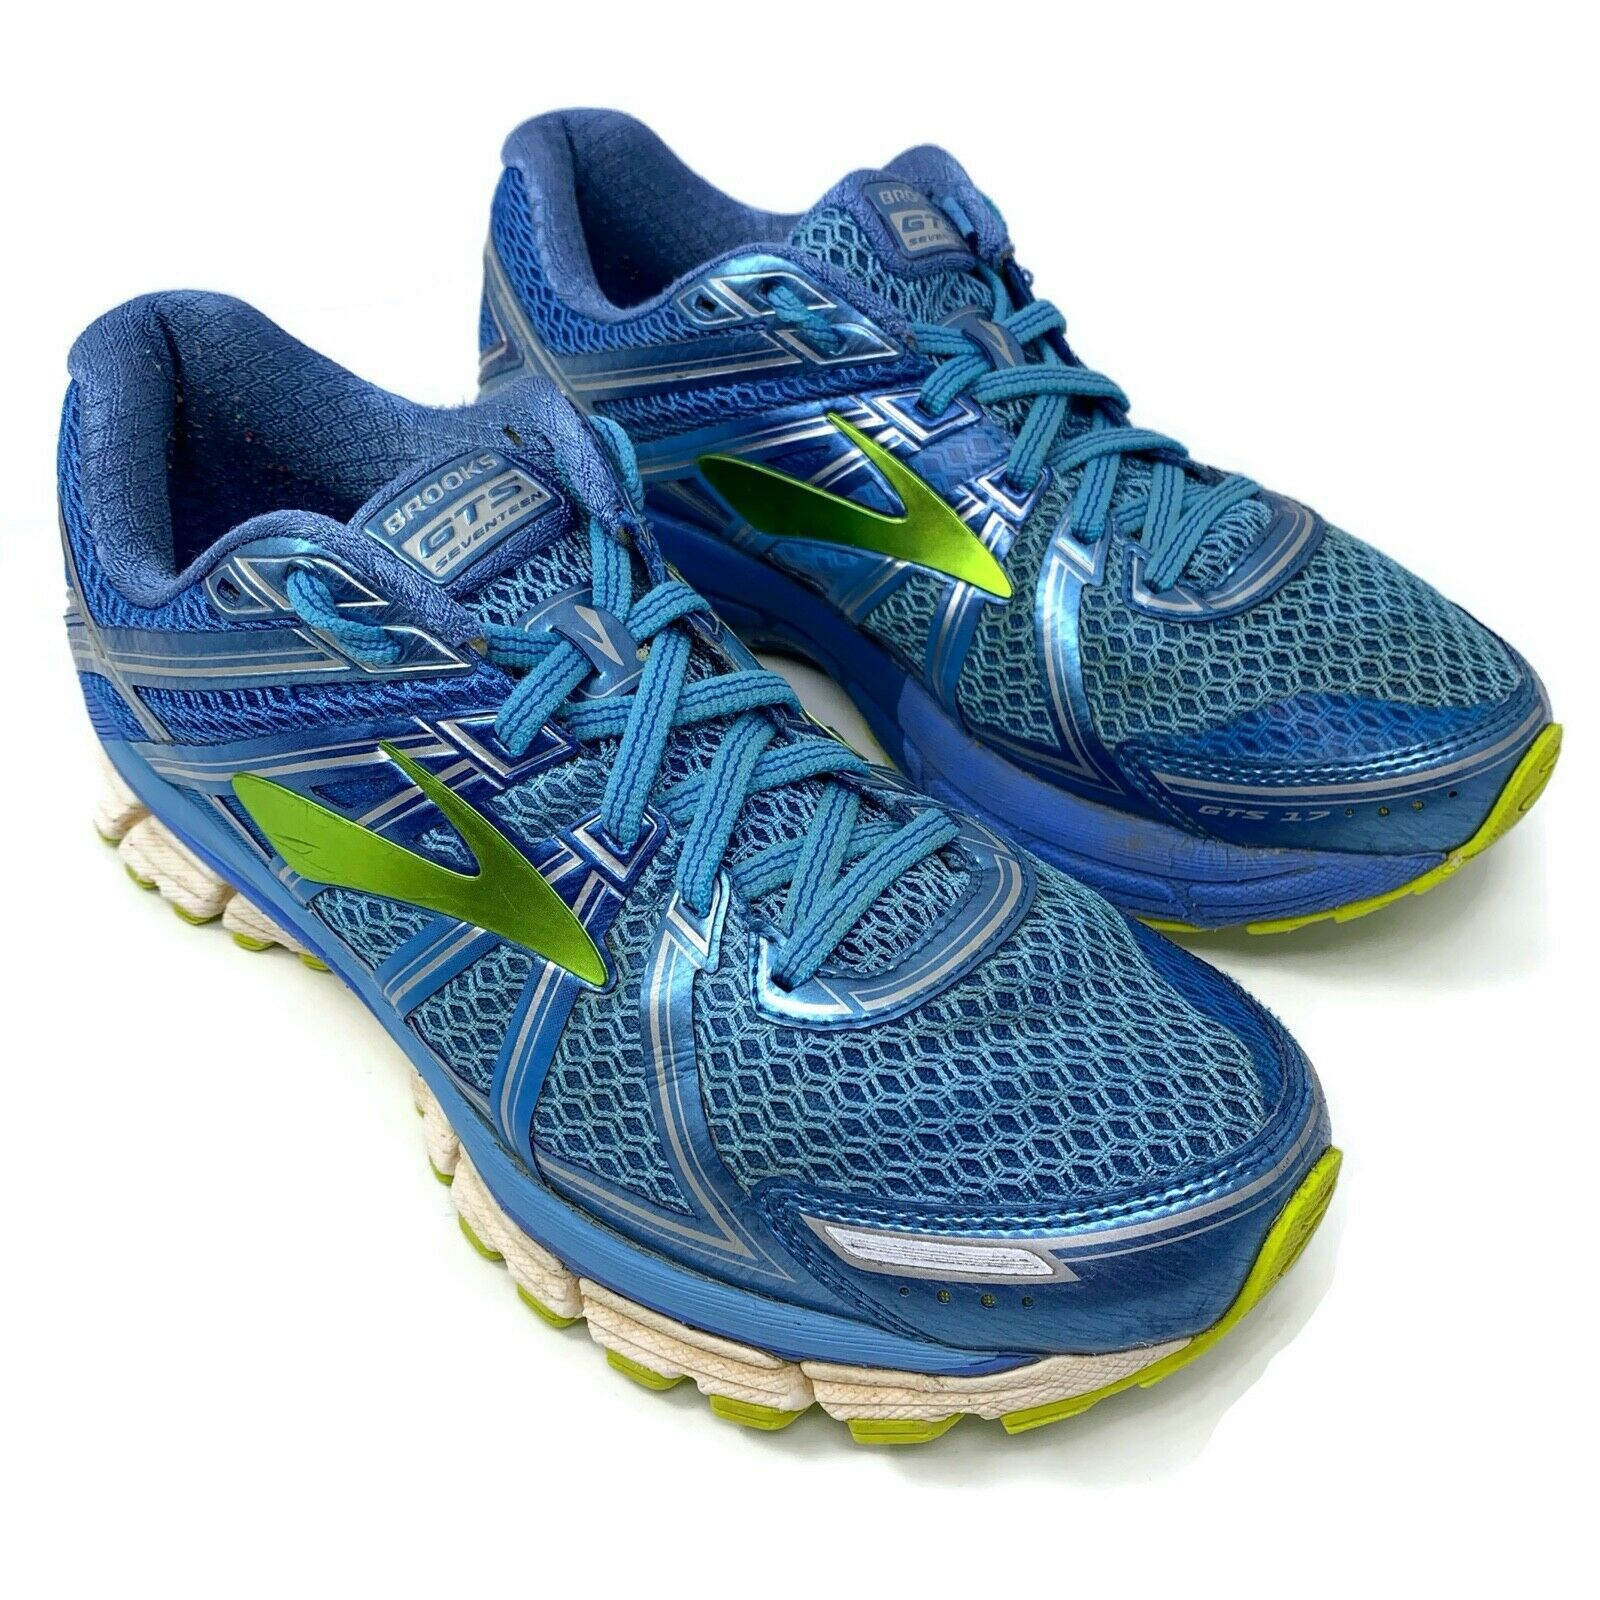 Details About Brooks Adrenaline Gts 17 Running Shoes 1202311b464 Blue Silver Women S Size 9 In 2020